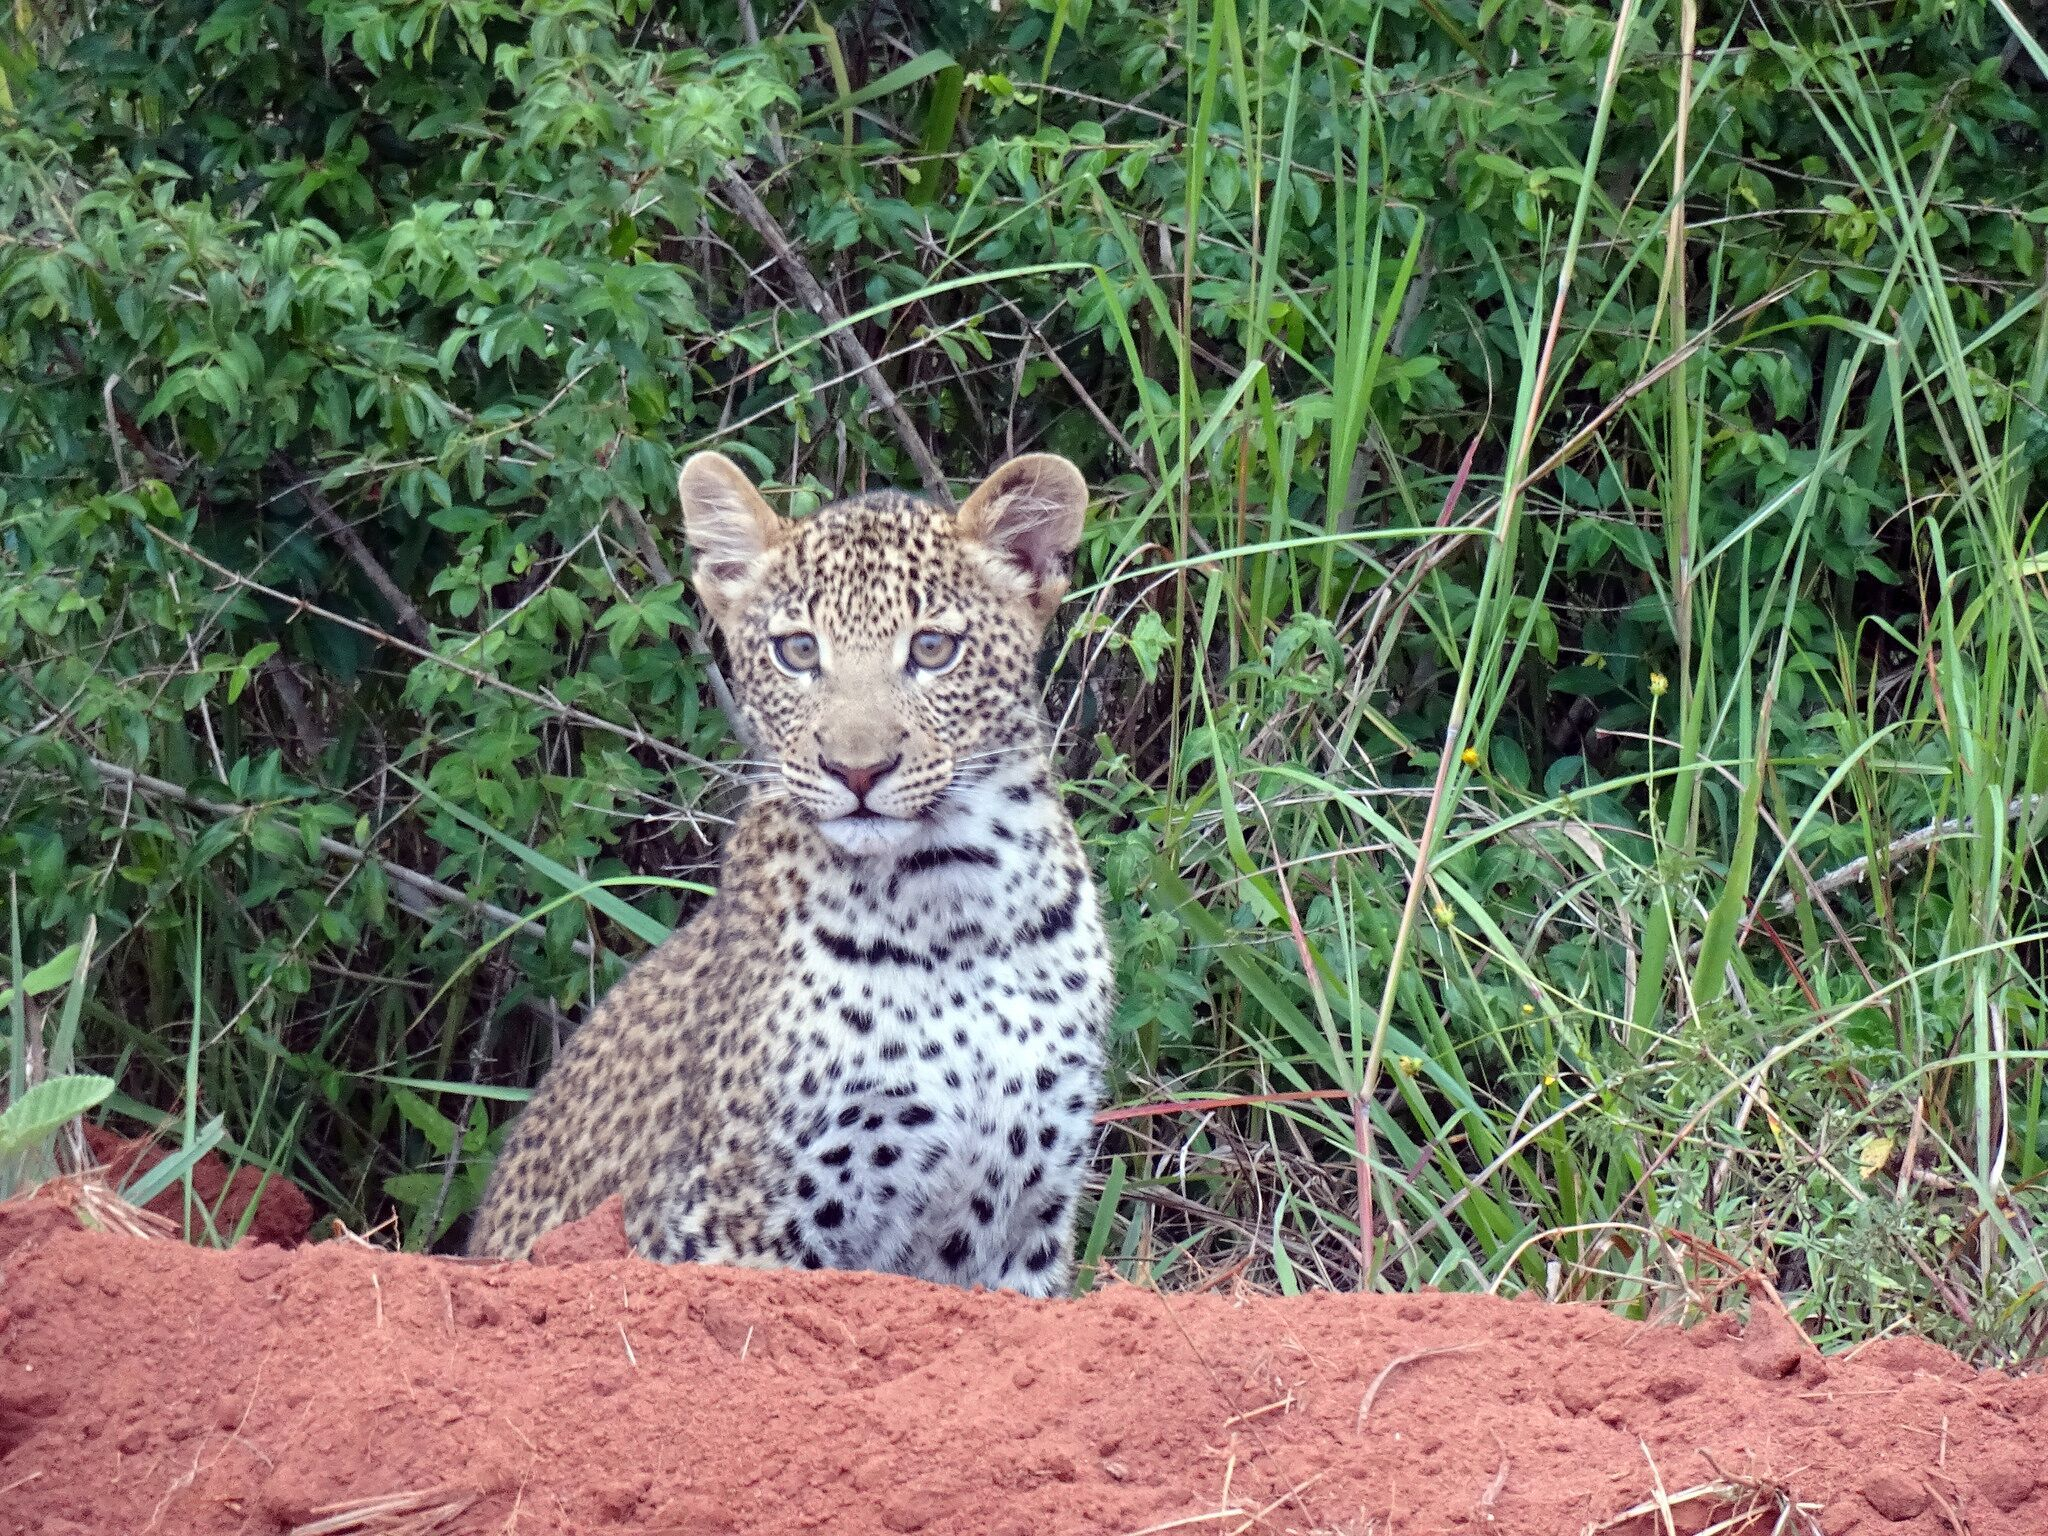 Go and see a Leopard on your Gap Year, one of Kenya's big five